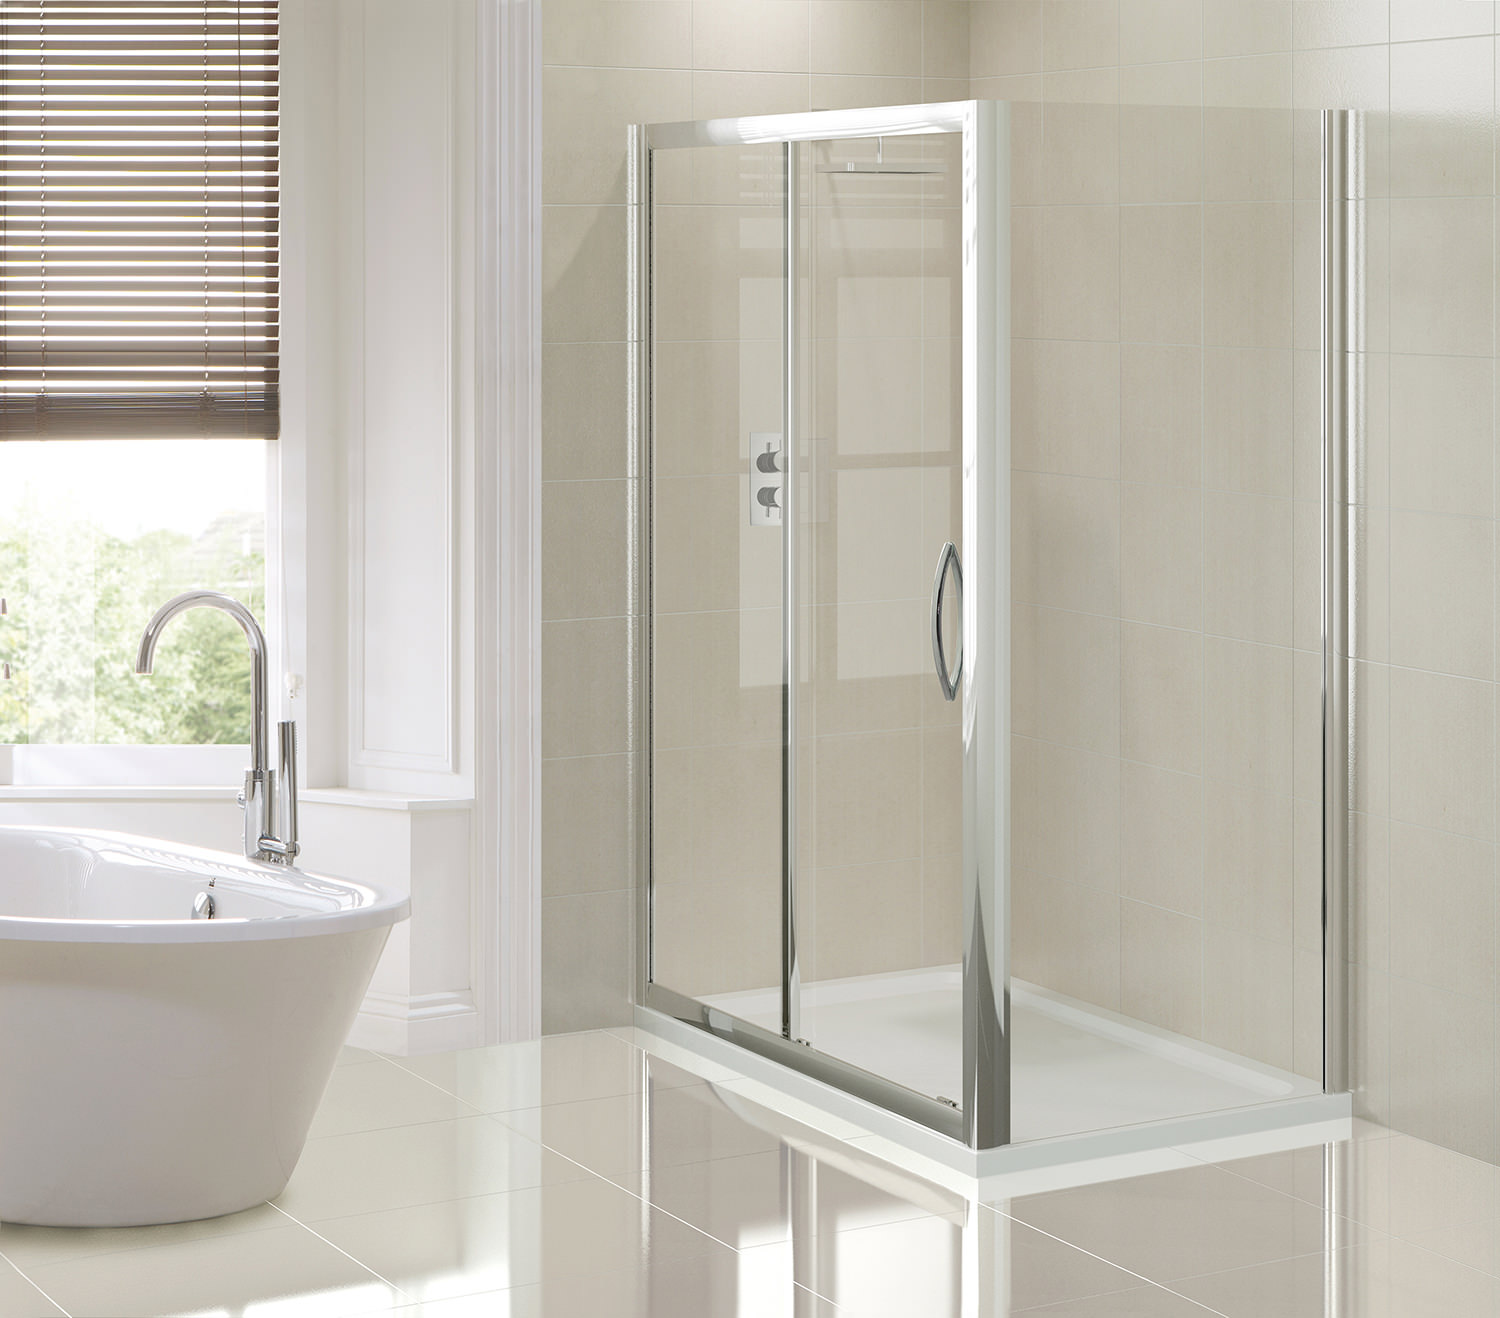 Aquadart venturi 8 1200mm sliding shower door aq8212s - Bathtub in shower ...